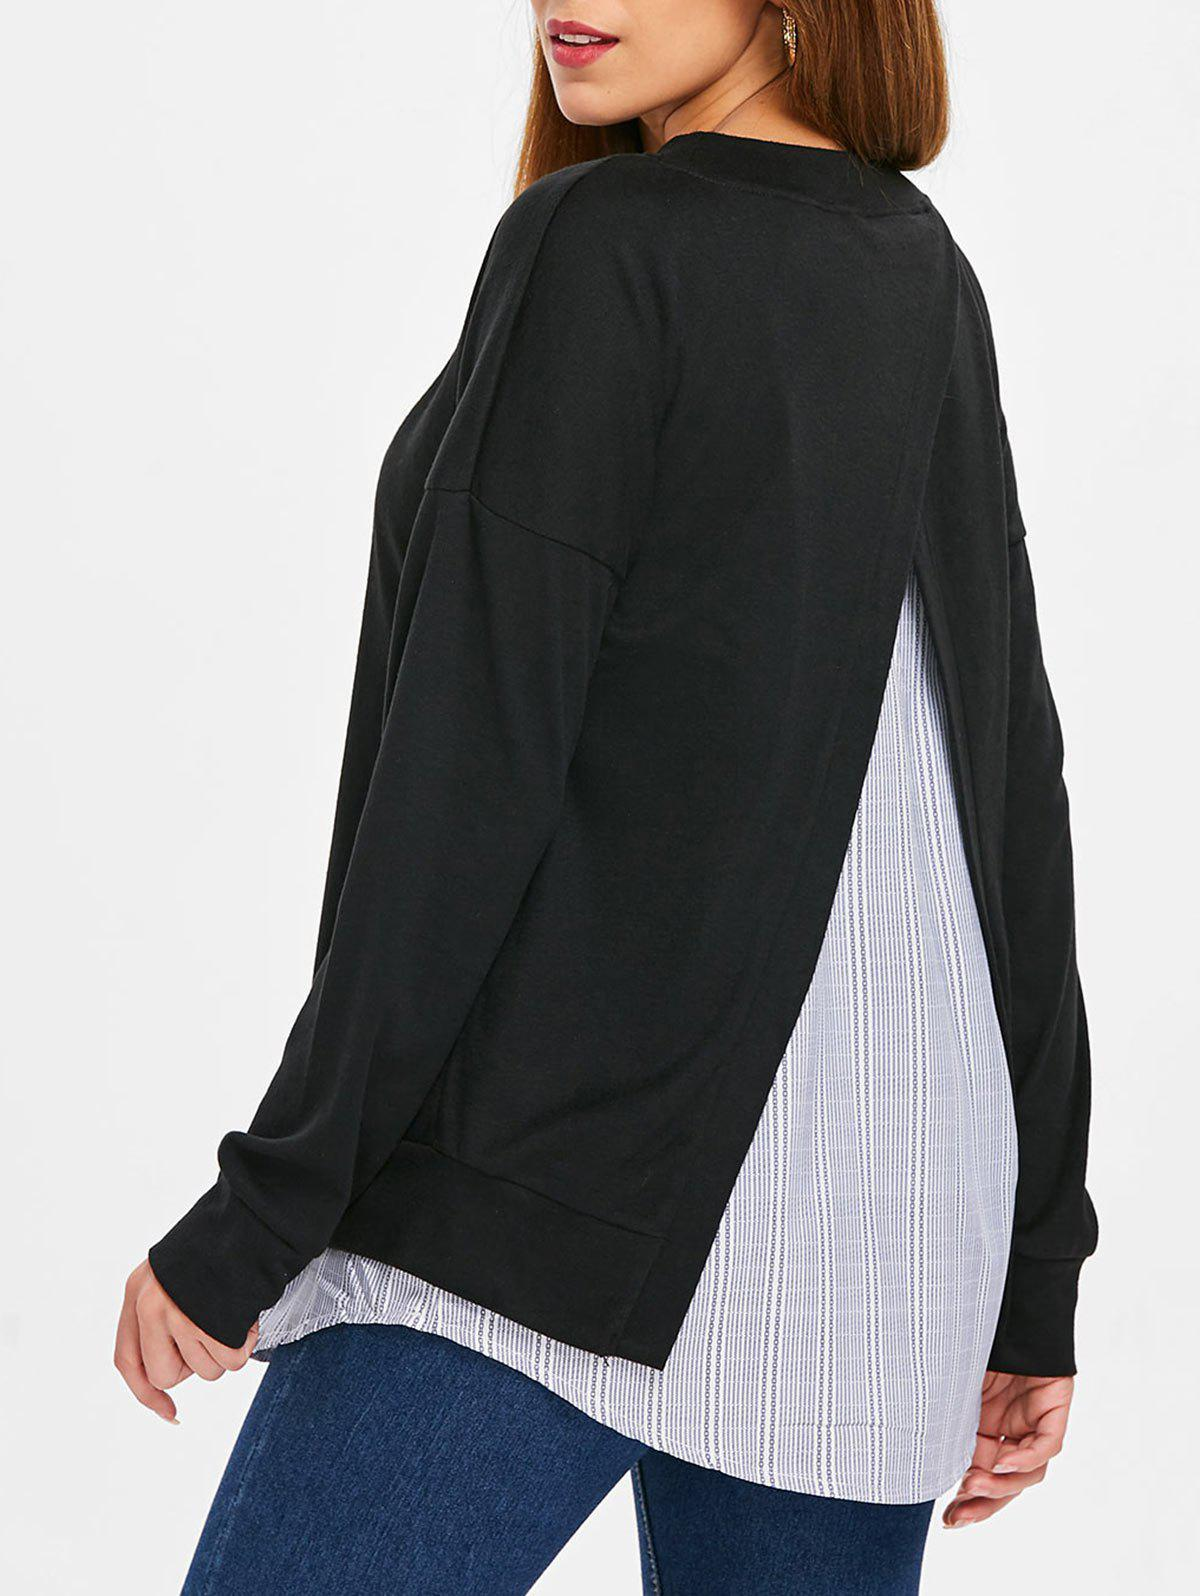 Buy Back Slit Long Sleeve Sweatshirt